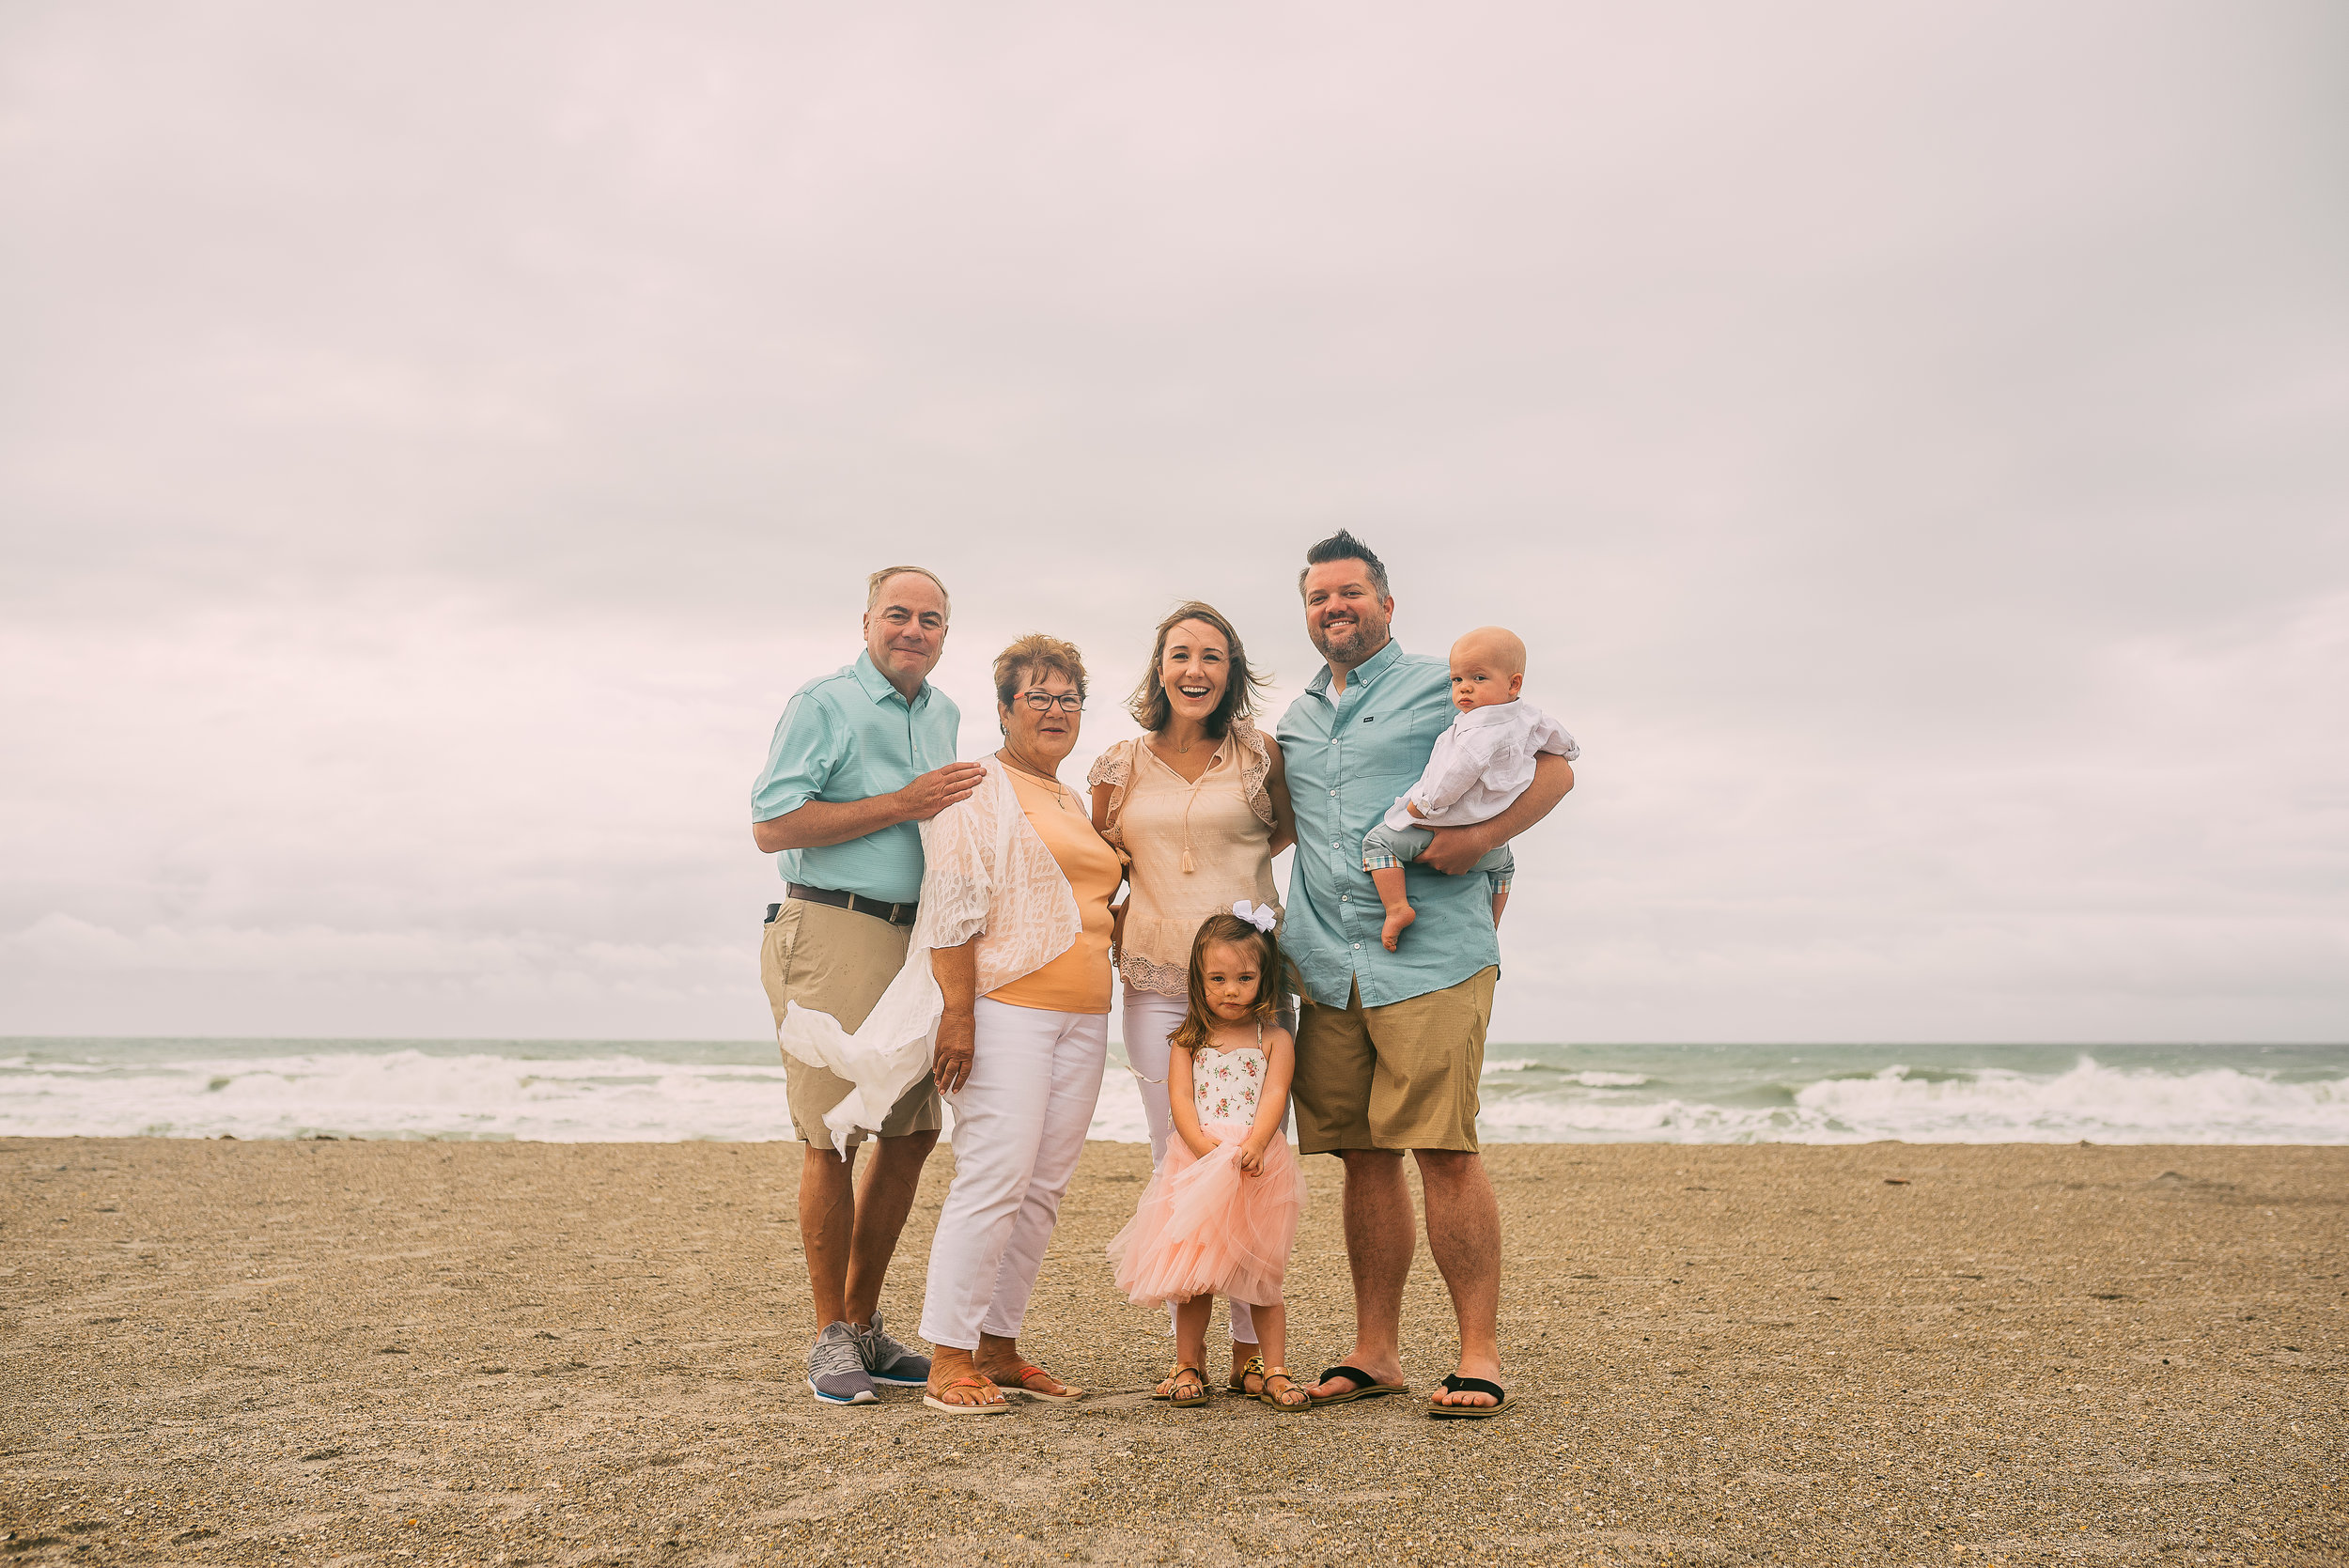 debbie-family-session-at-cocoa-beach-7.jpg